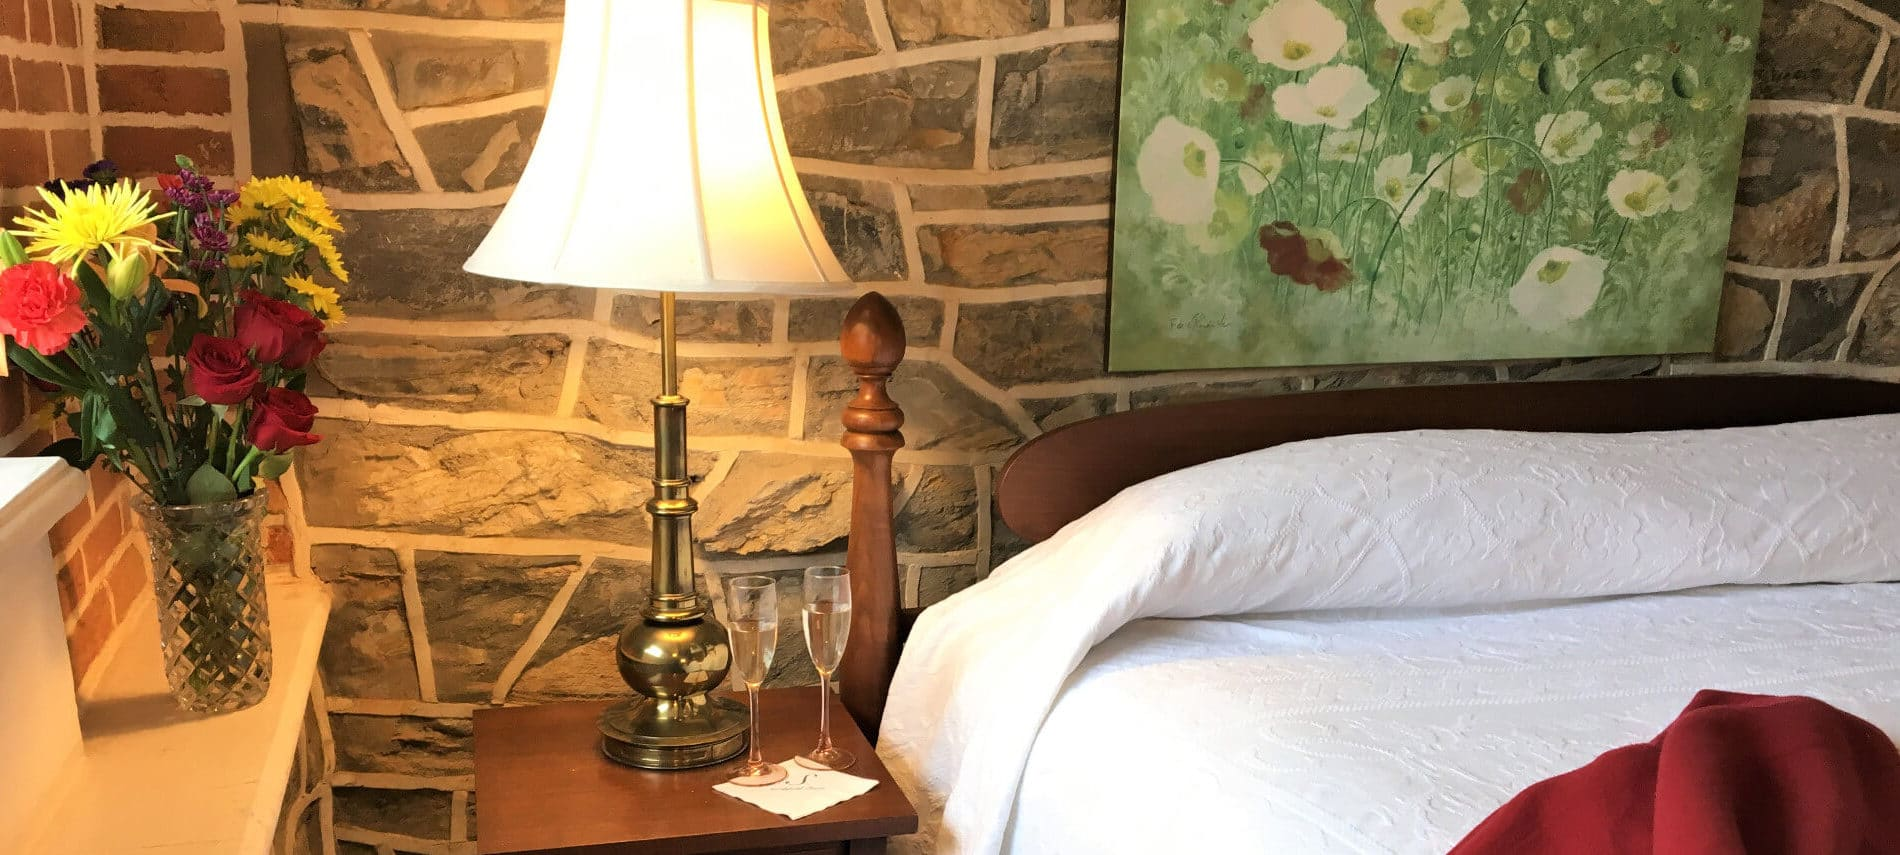 Cozy bed set against a stone wall with a cheerful lamo on a wooden bedside table